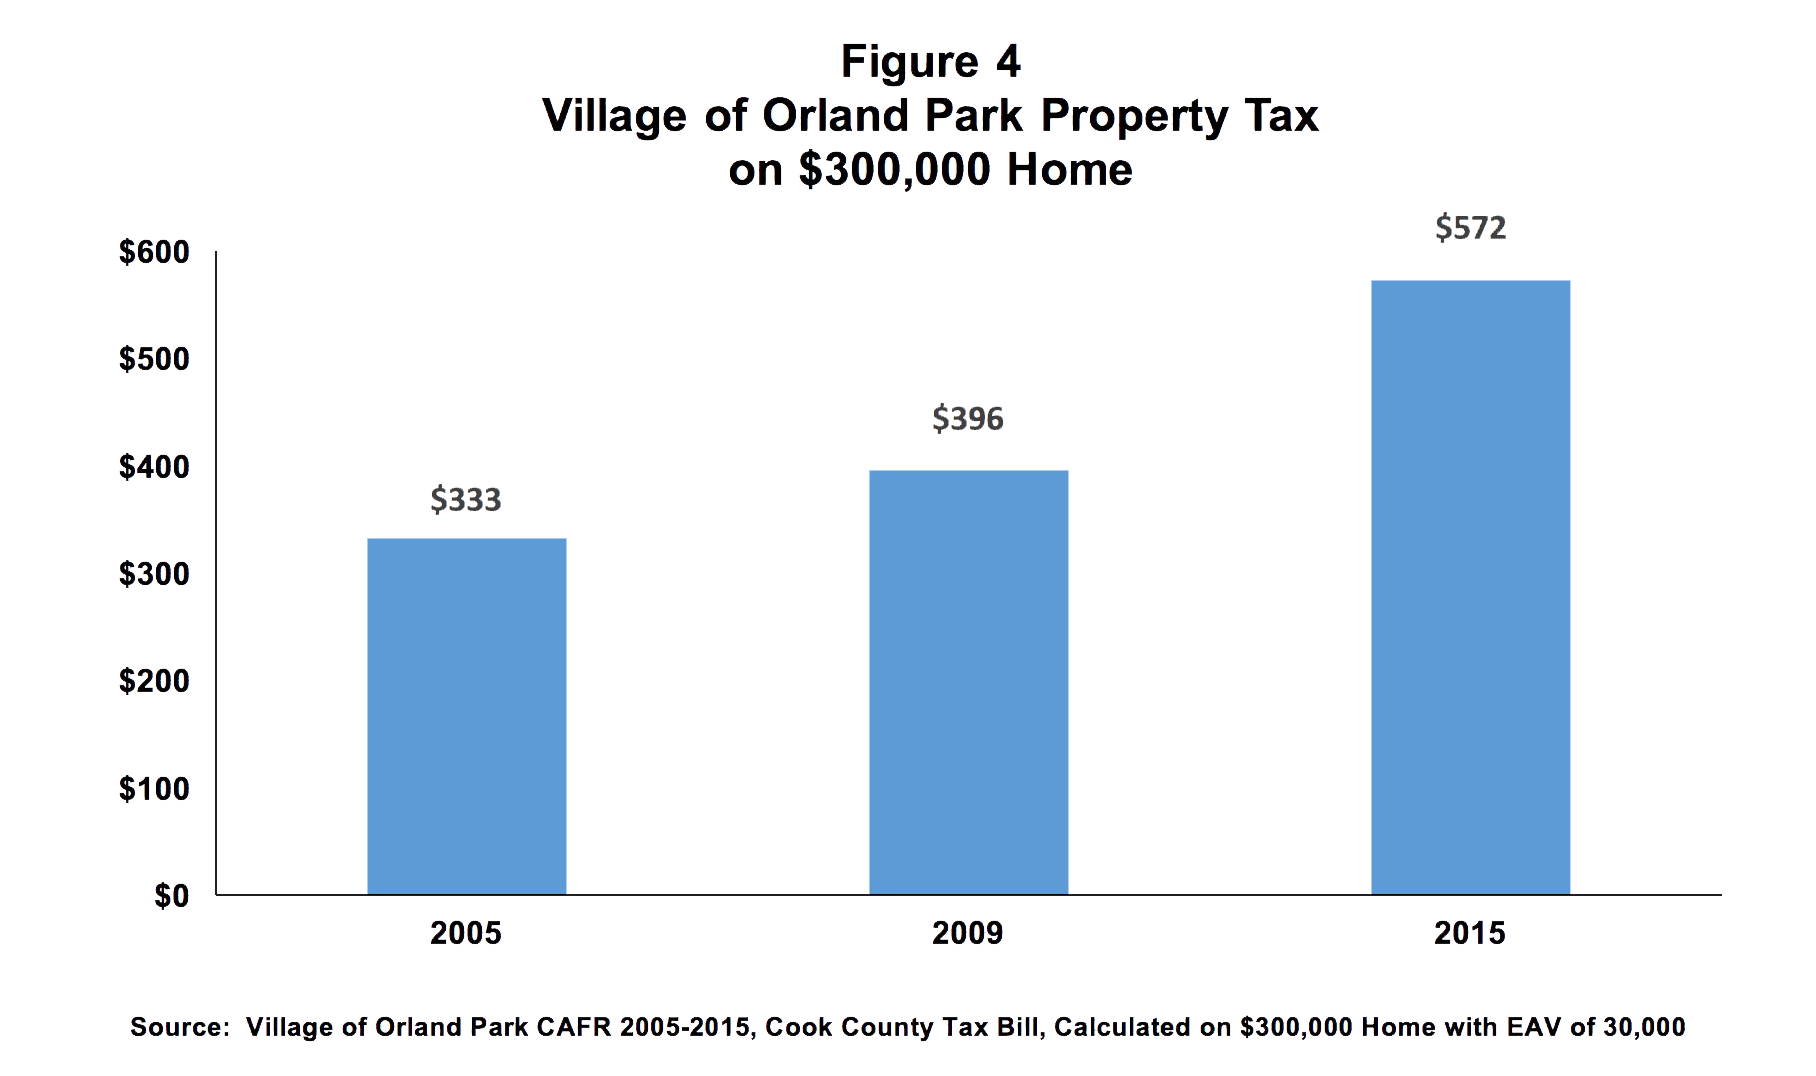 Village of Orland Park Property Tax on 300k Home Chart